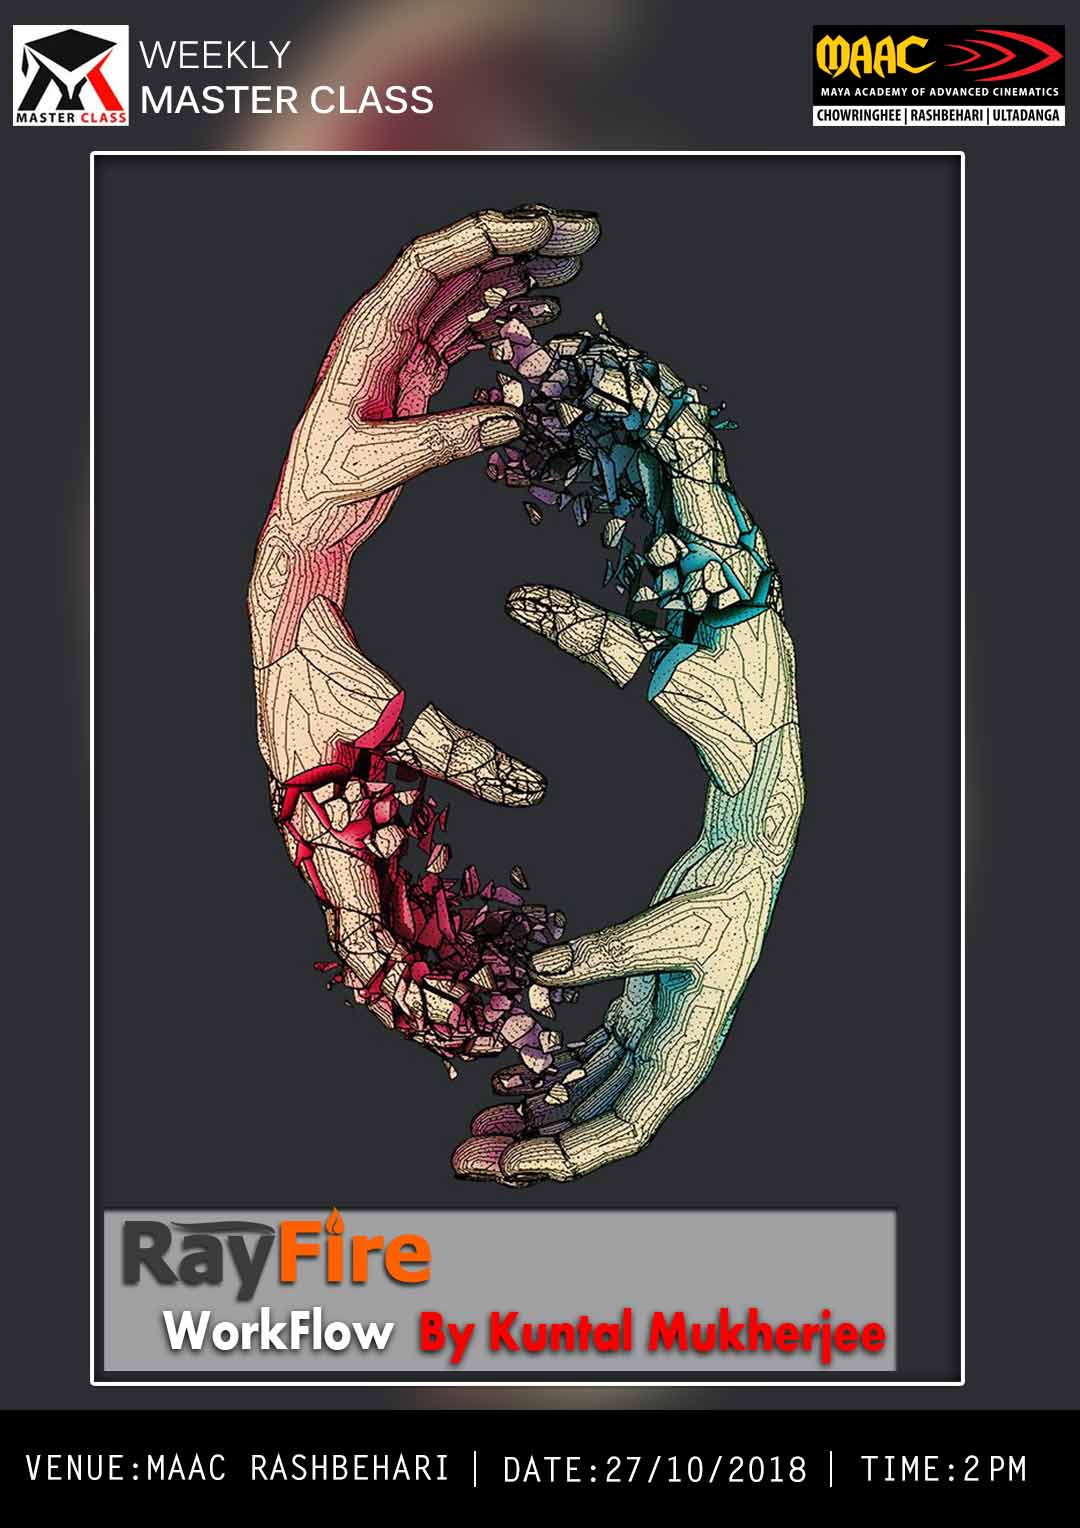 Weekly Master Class on RayFire Workflow